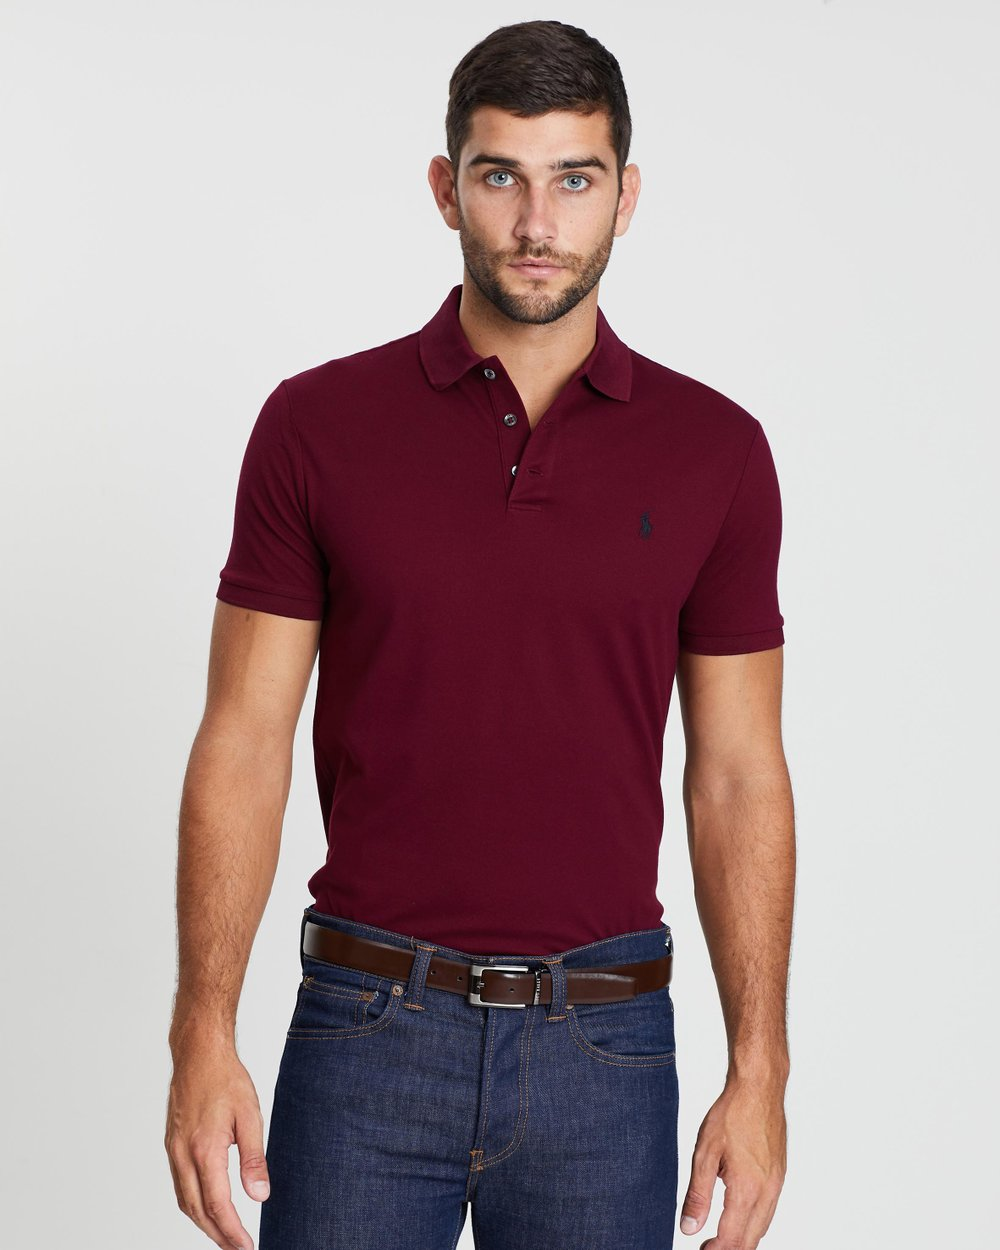 466da70b8ece Custom Slim Fit Mesh Polo by Polo Ralph Lauren Online